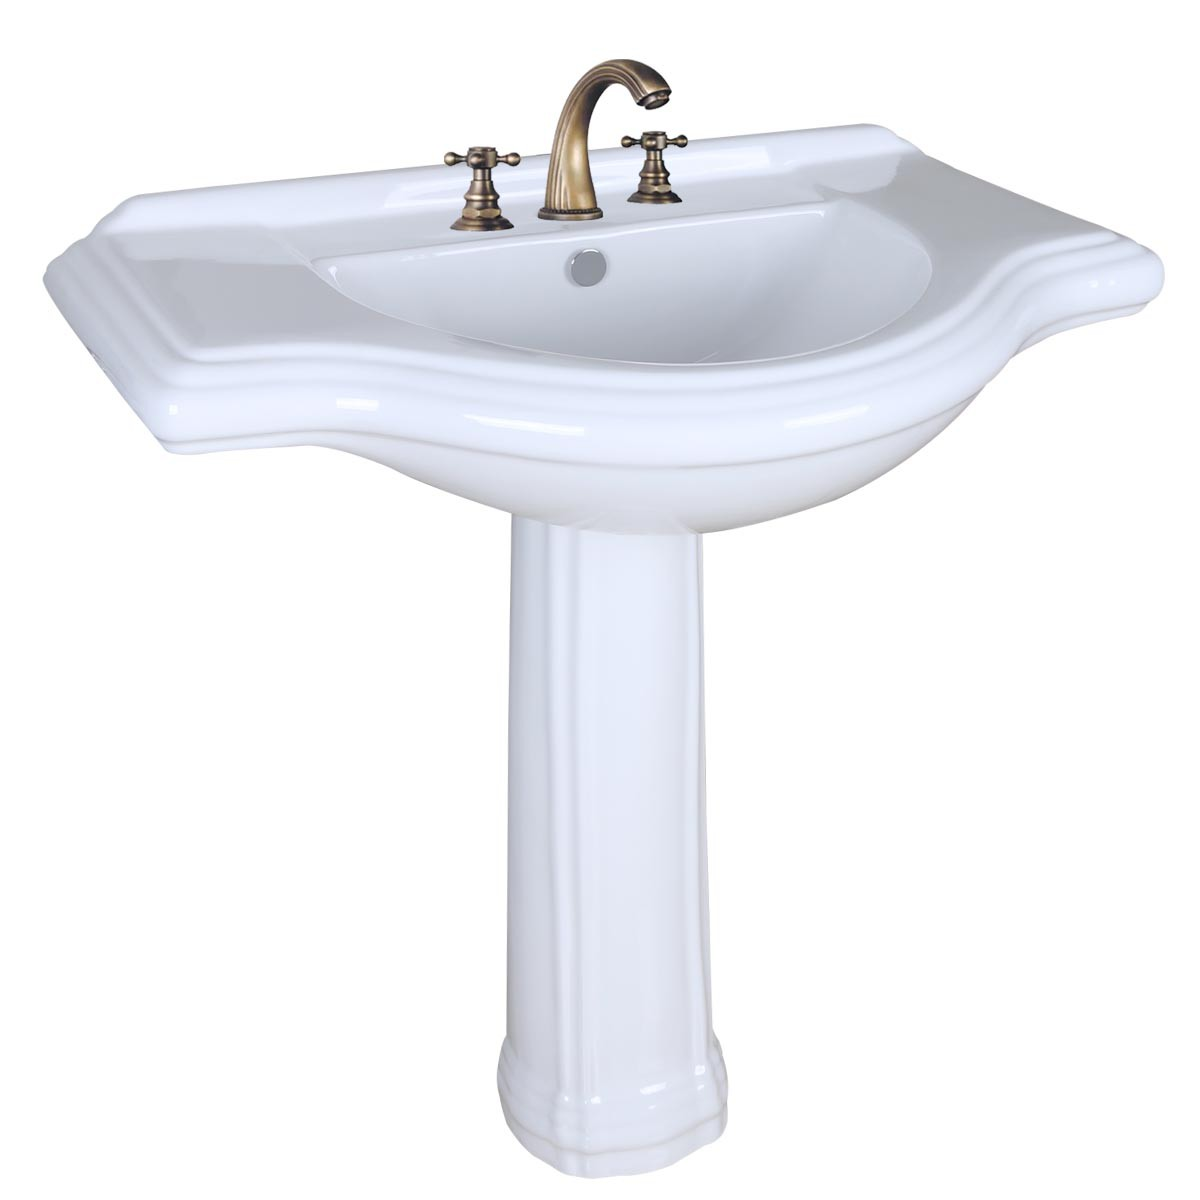 Large Pedestal Sink Bathroom Console 8 Widespread 34 W